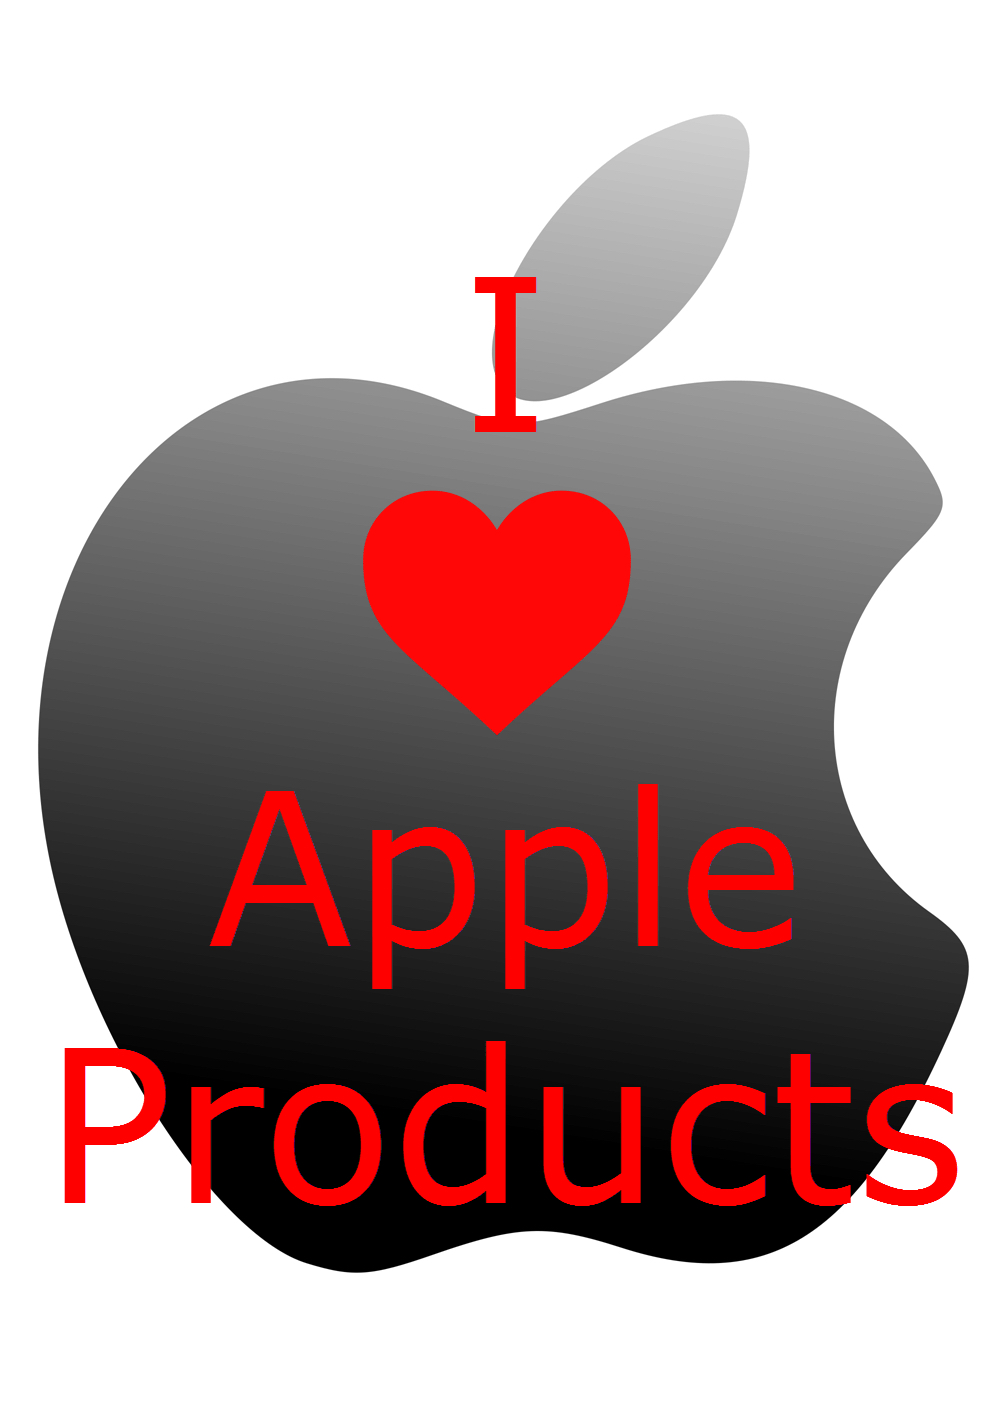 Apple Products.jpg